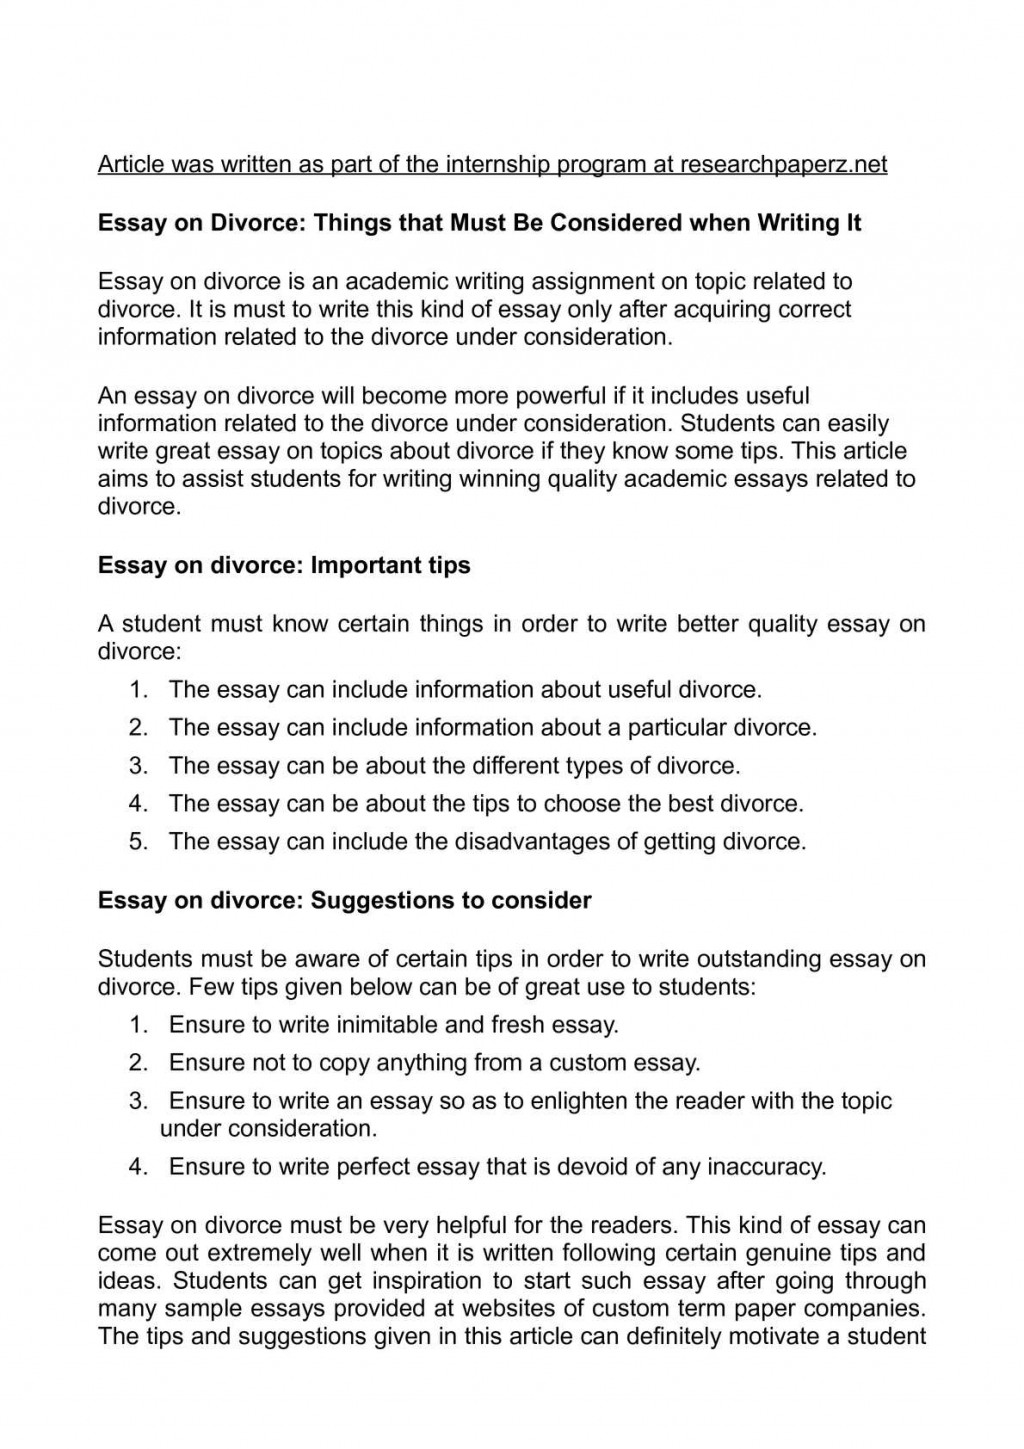 006 Essay Example Divorce Unusual Titles Conclusion Social Issue Large